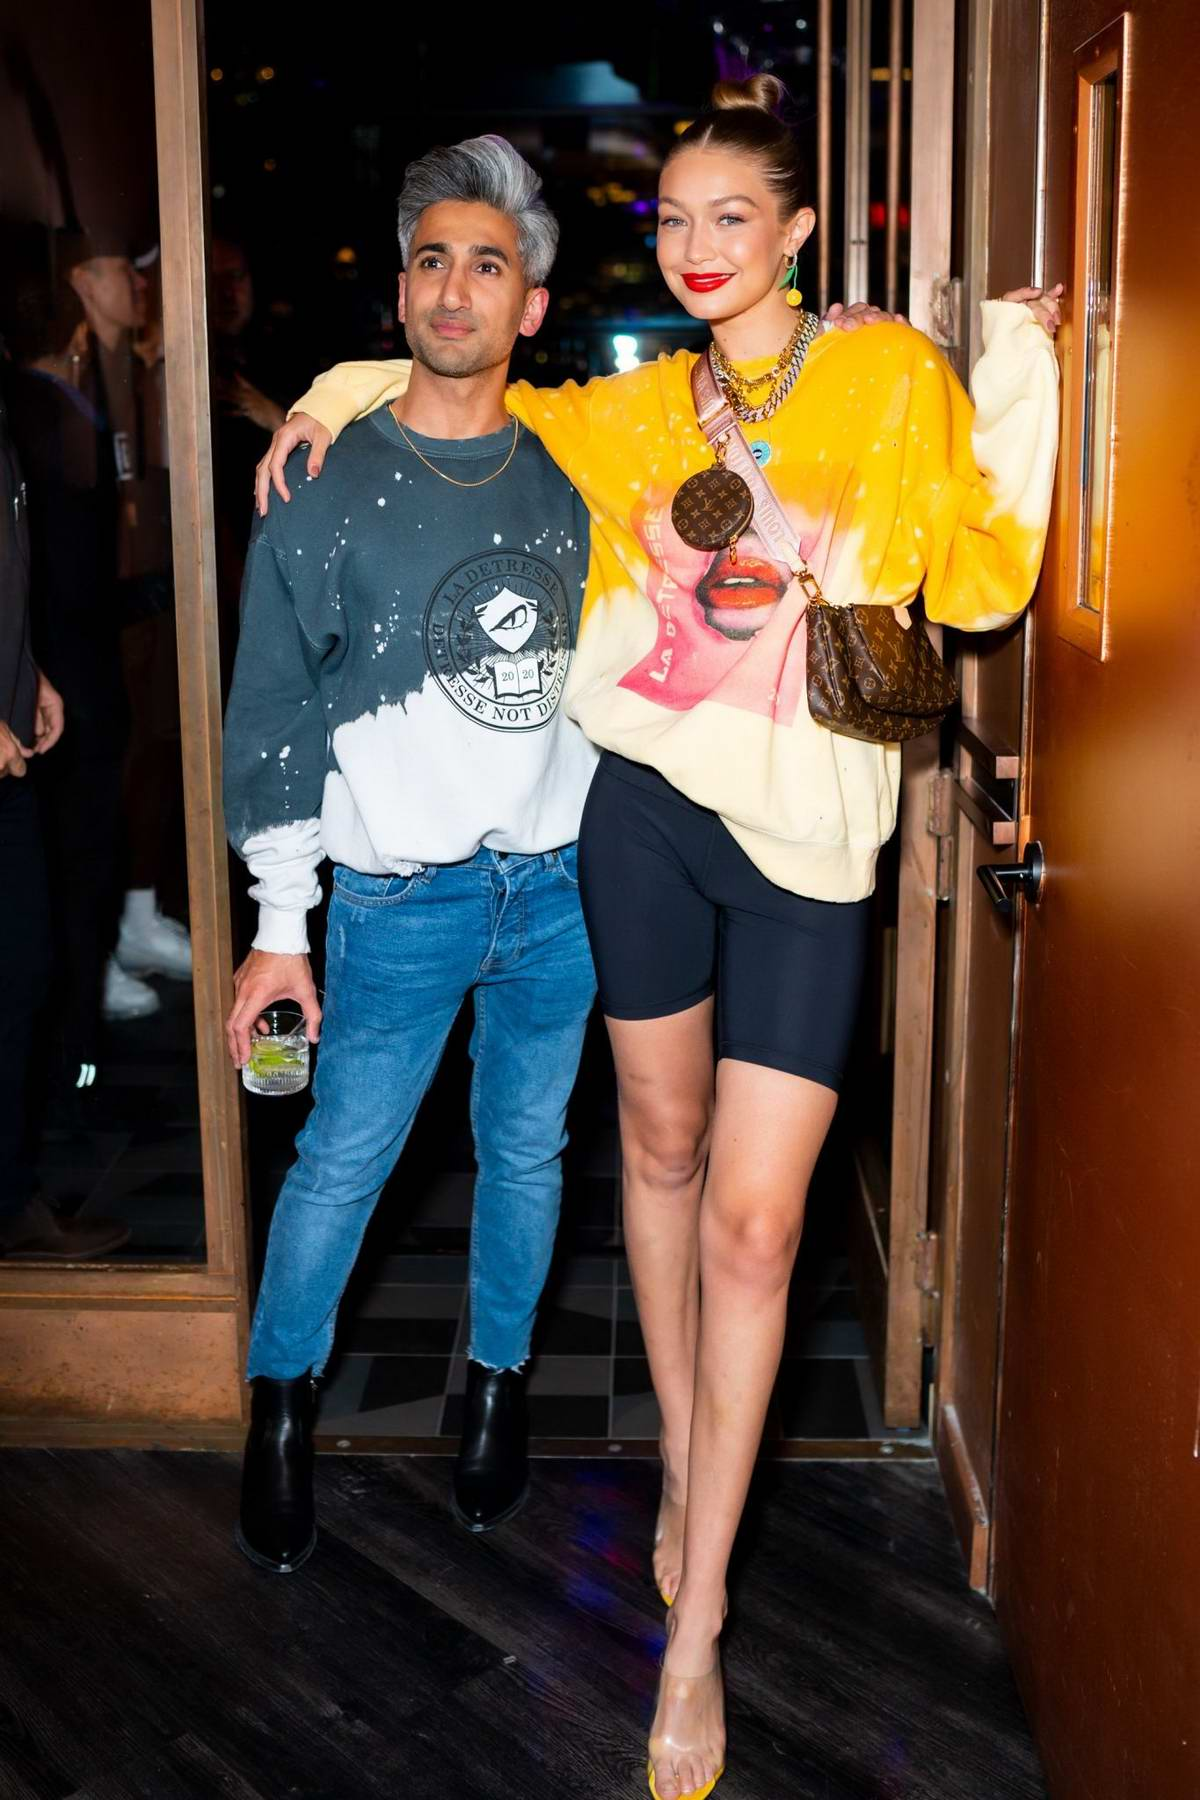 Gigi Hadid attends La Detresse SS20 'Acid Drop' by Alana Hadid and Emily Perlstein at The Fleur Room in New York City